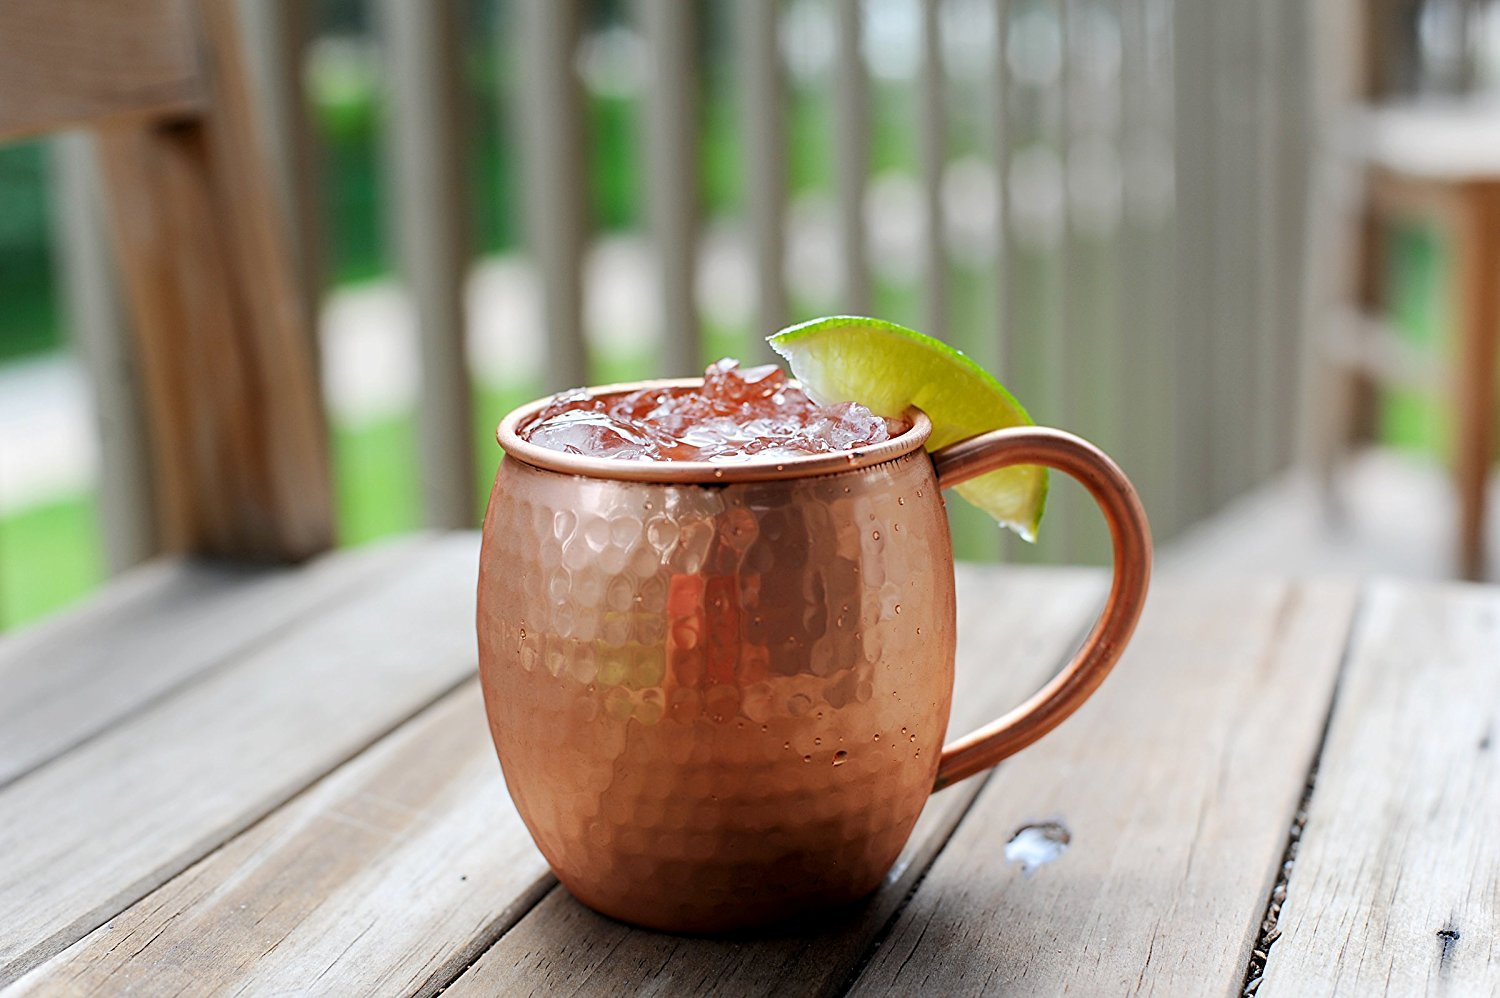 12 PACK Alchemade Copper Barrel Mug for Moscow Mules - 16 oz - 100% Pure Hammered Copper - Heavy Gauge by Alchemade (Image #4)